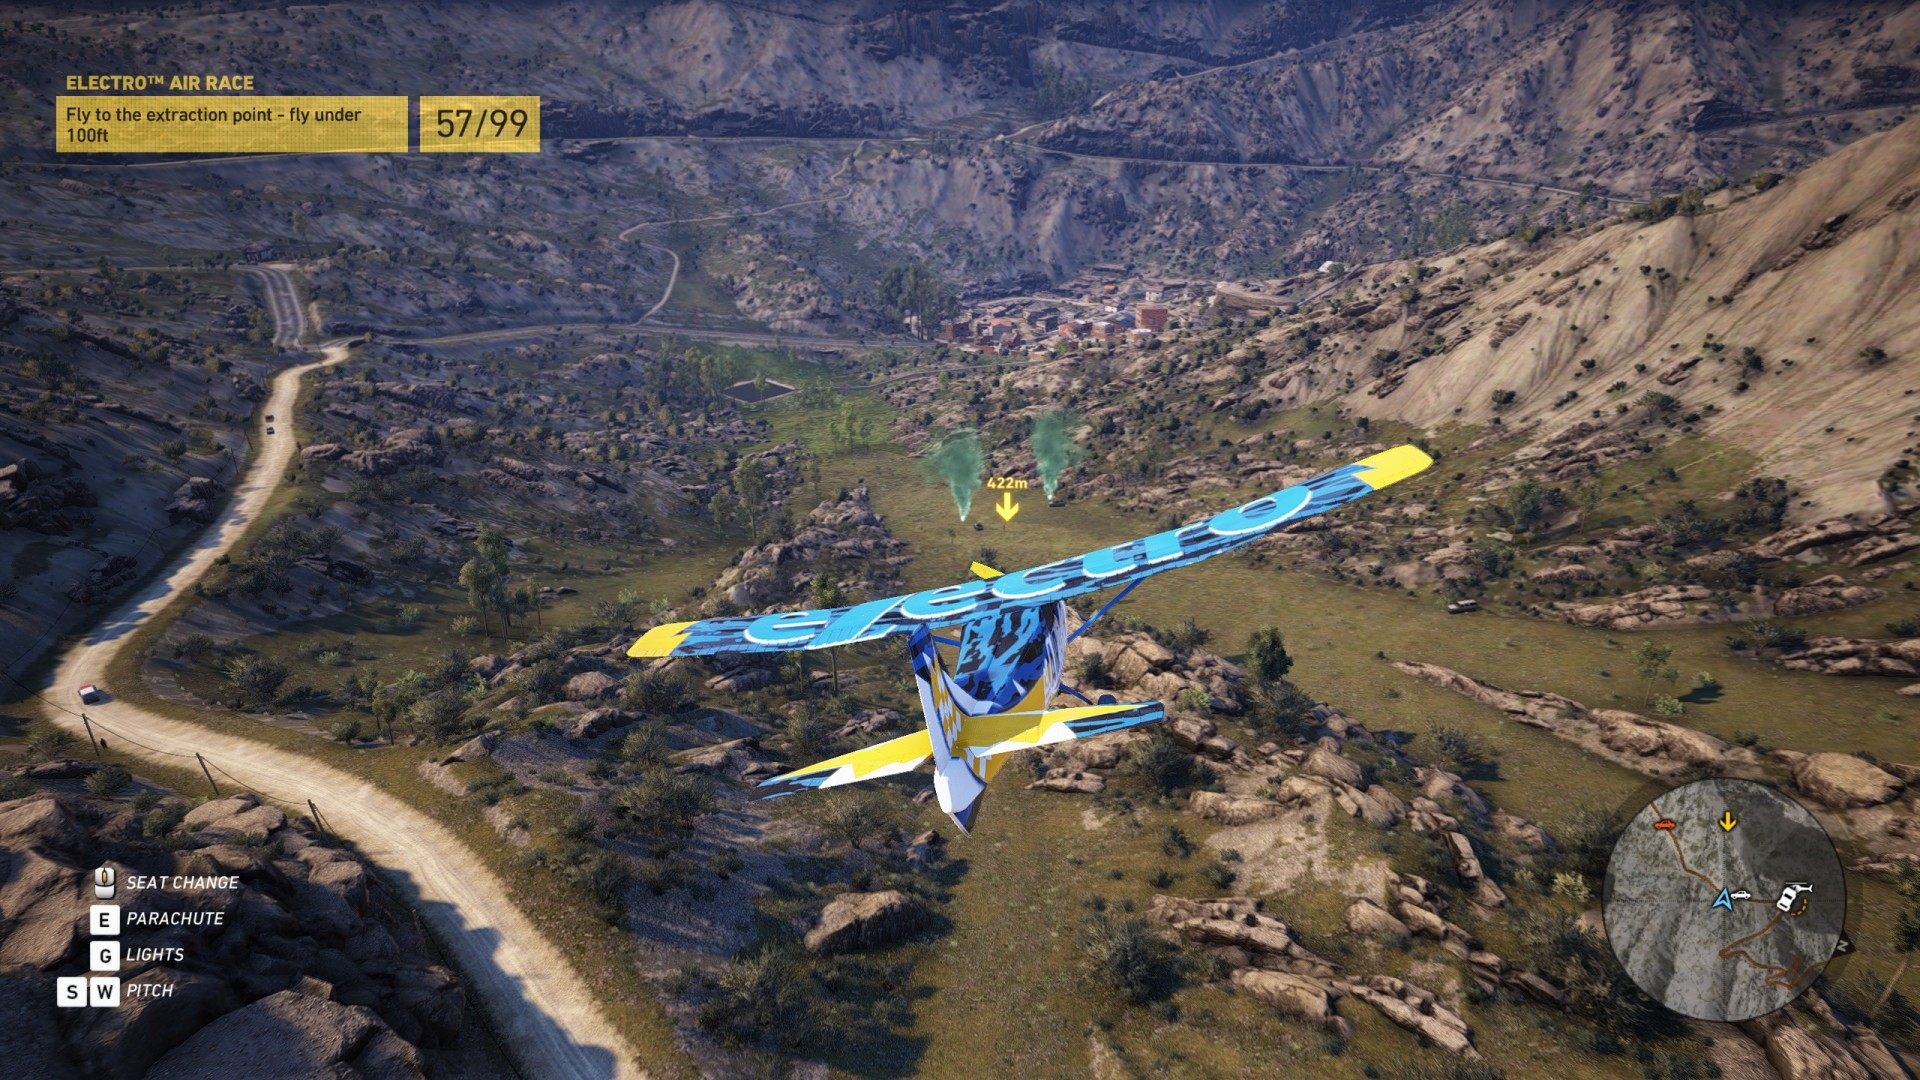 Electro™ Air Race, Ghost Recon: Wildlands Mission